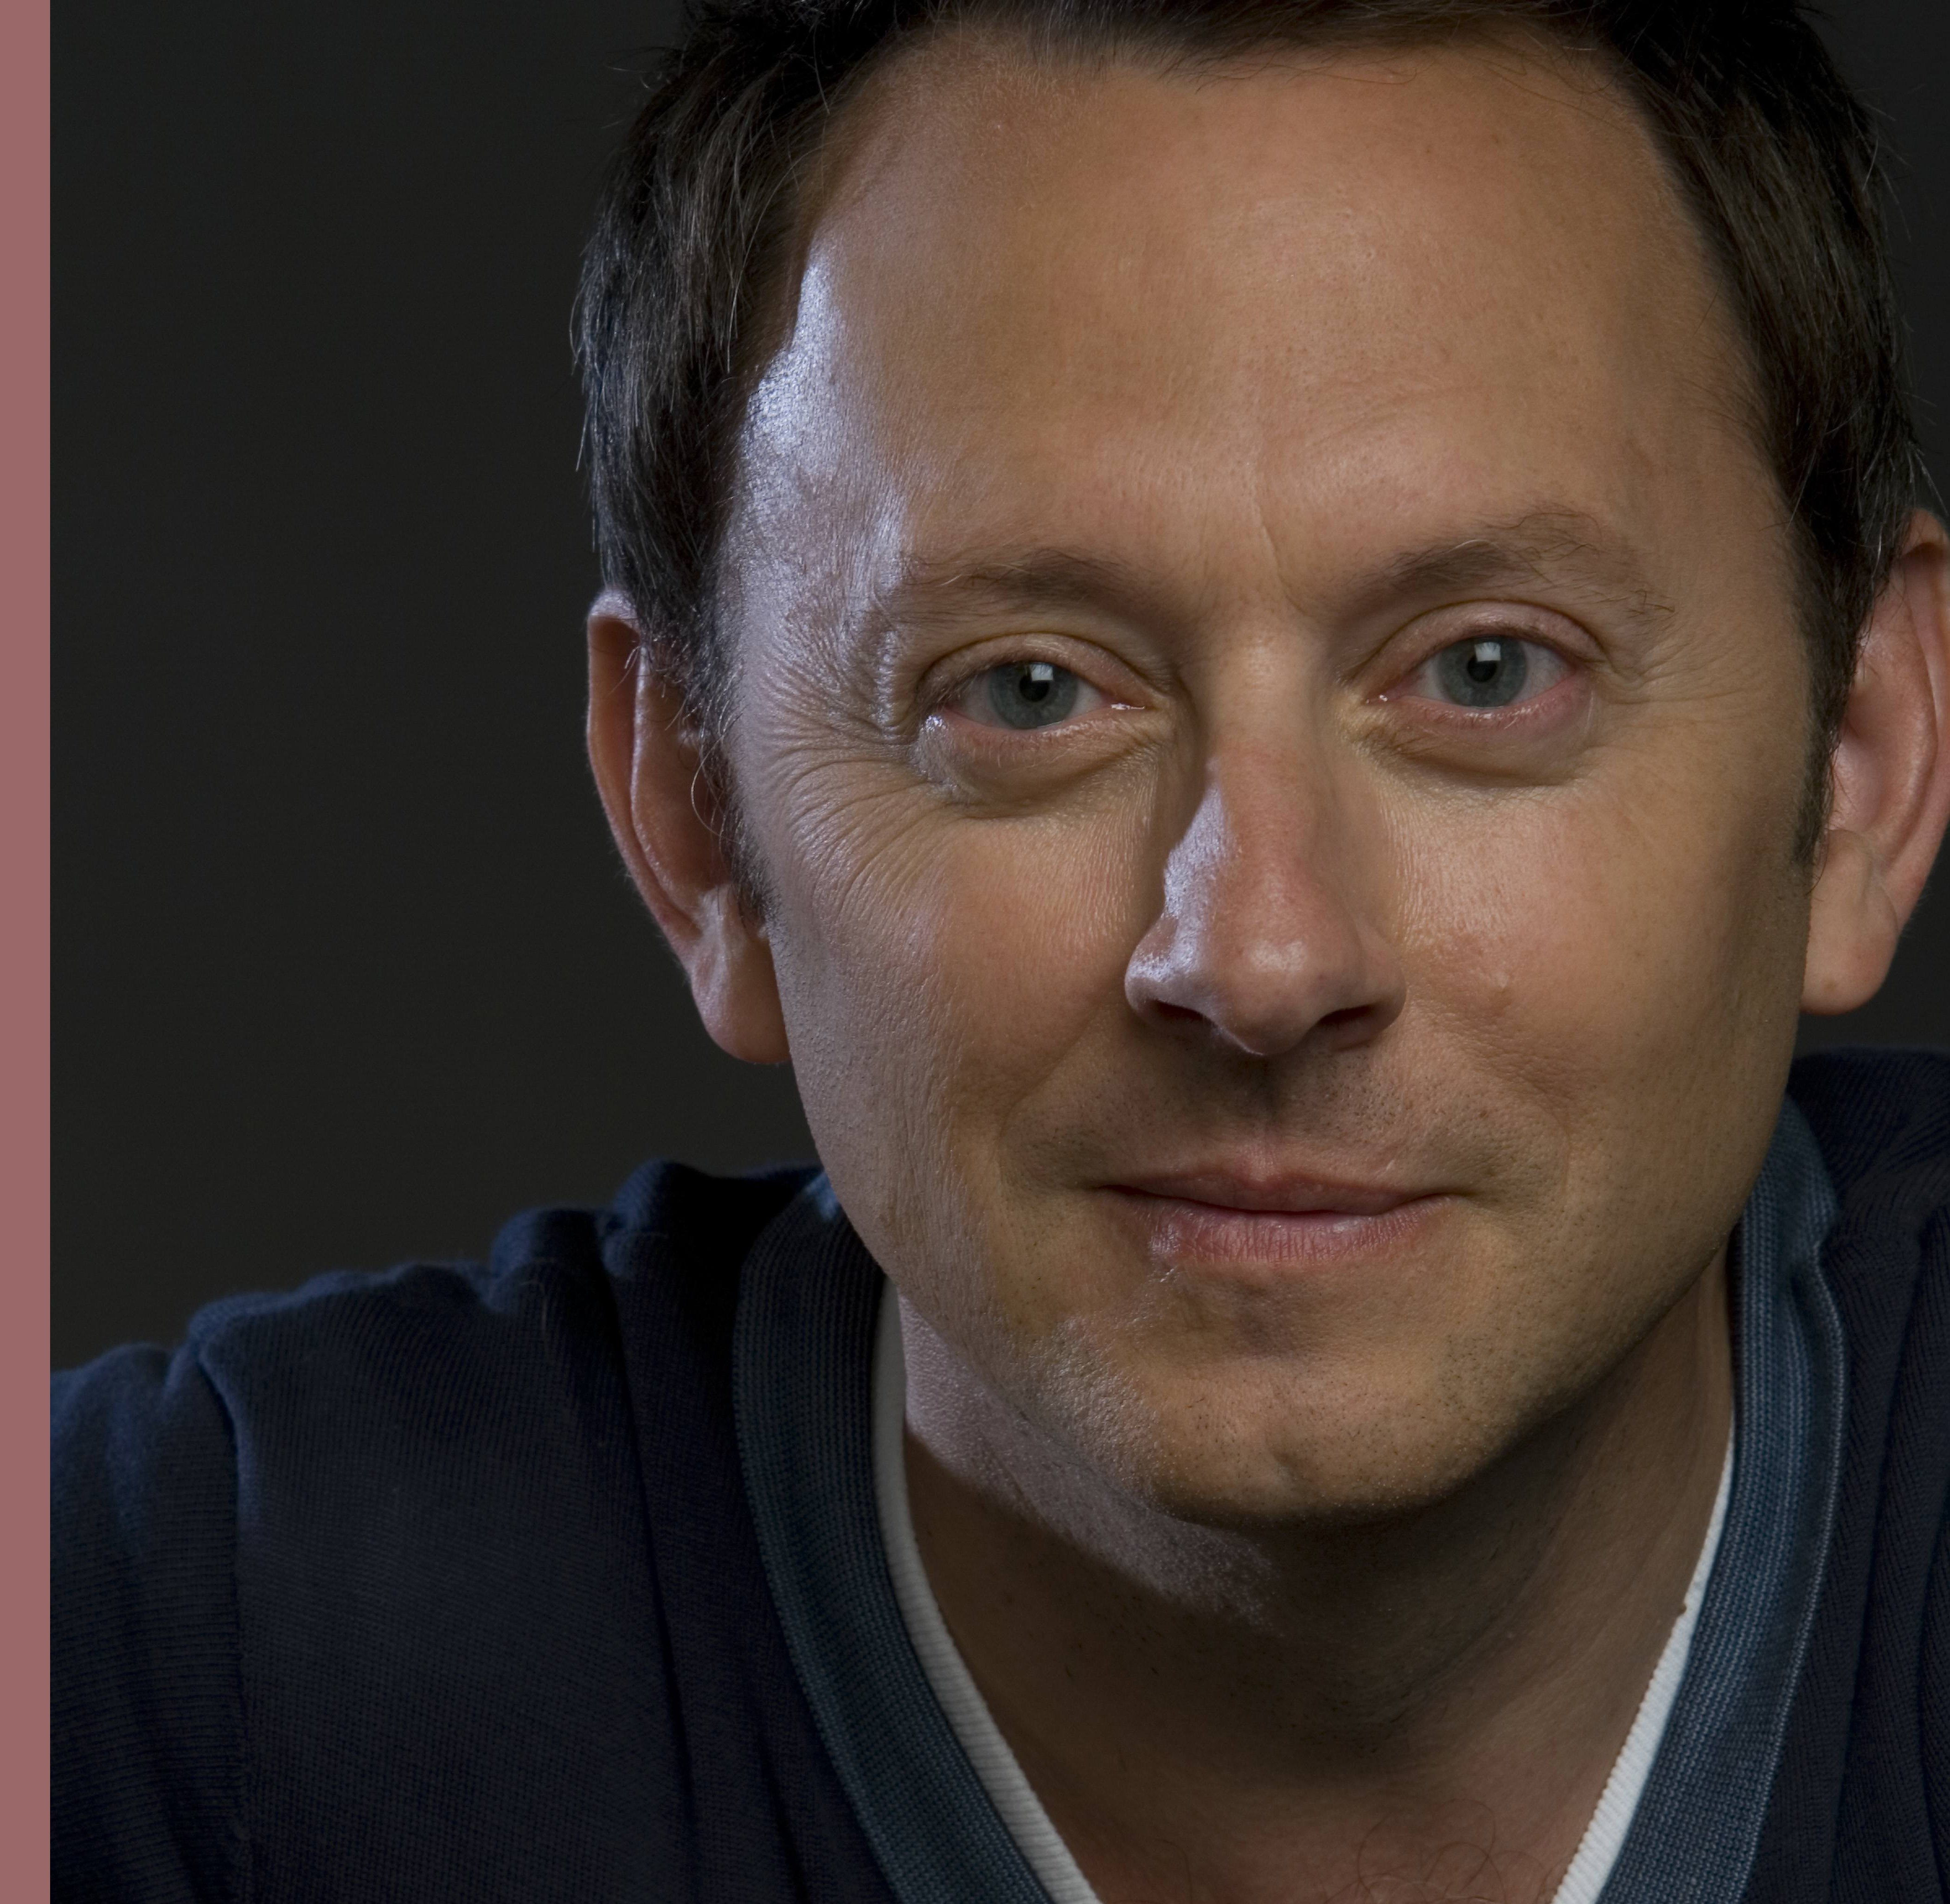 Michael emerson known people famous people news and for The emerson